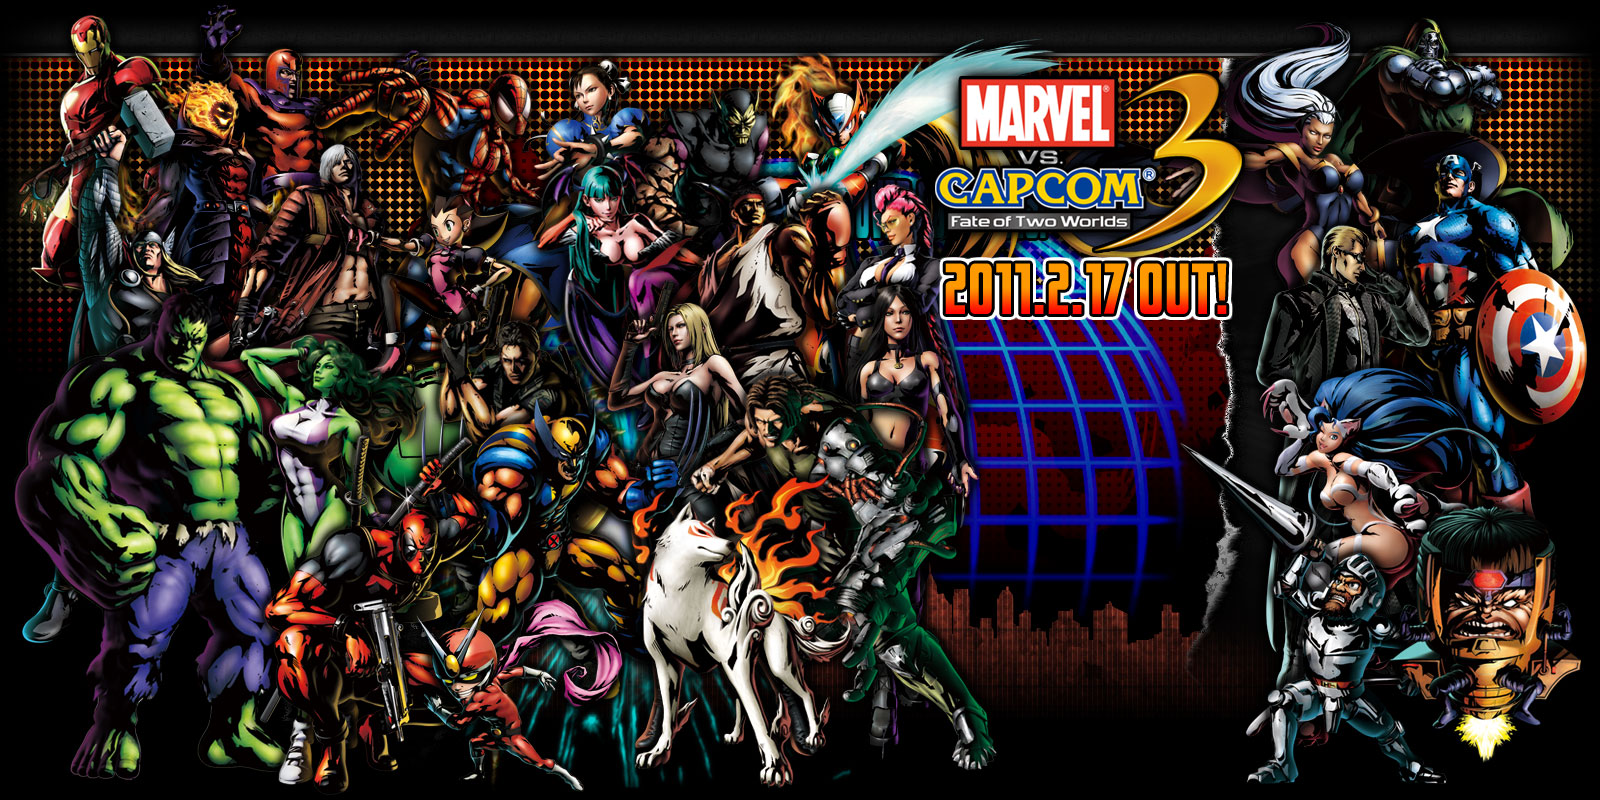 Marvel vs. Capcom 3: Fate of